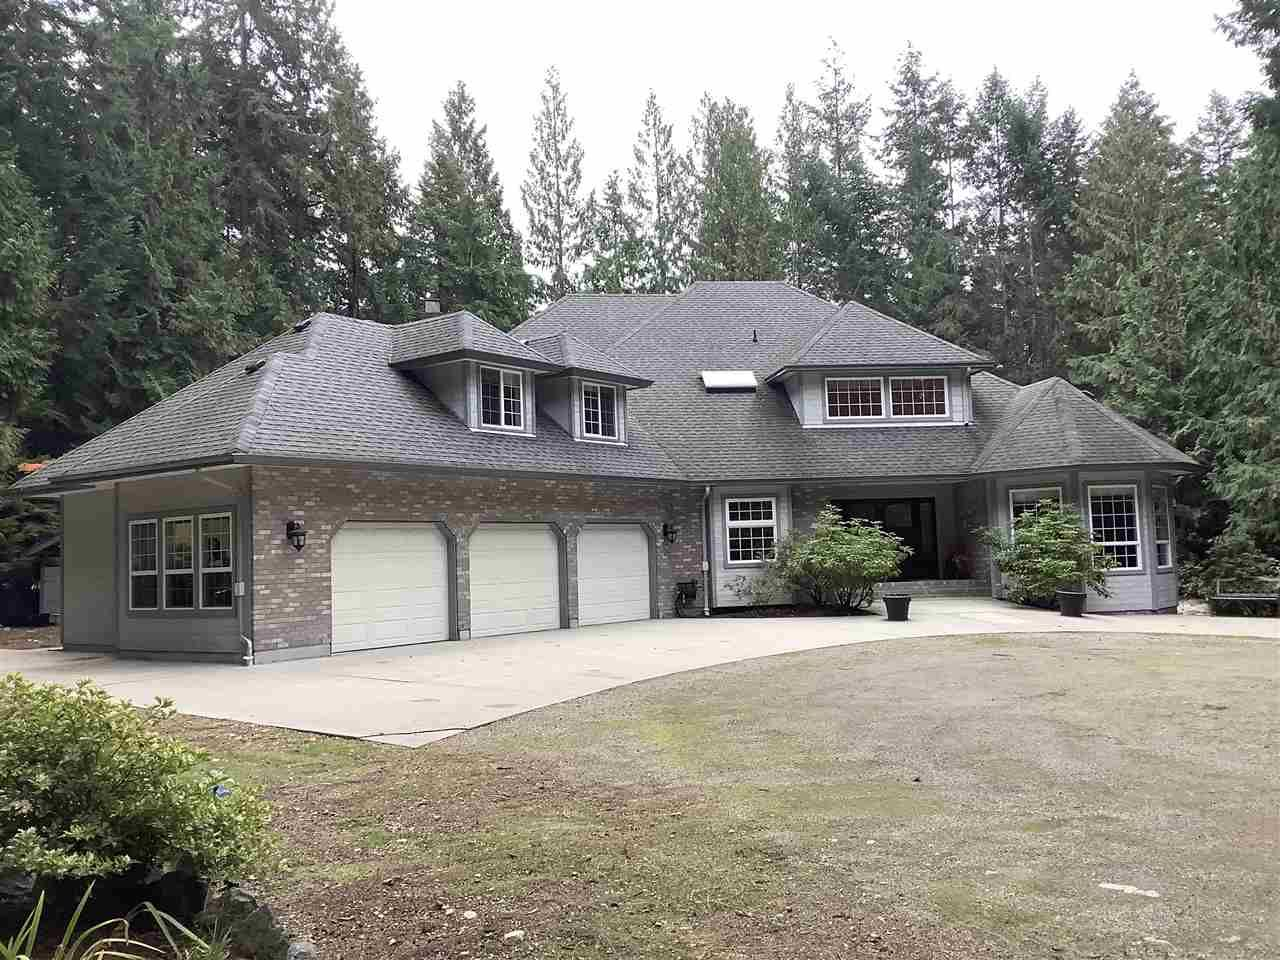 Main Photo: 1356 ROBERTS CREEK Road: Roberts Creek House for sale (Sunshine Coast)  : MLS®# R2512236